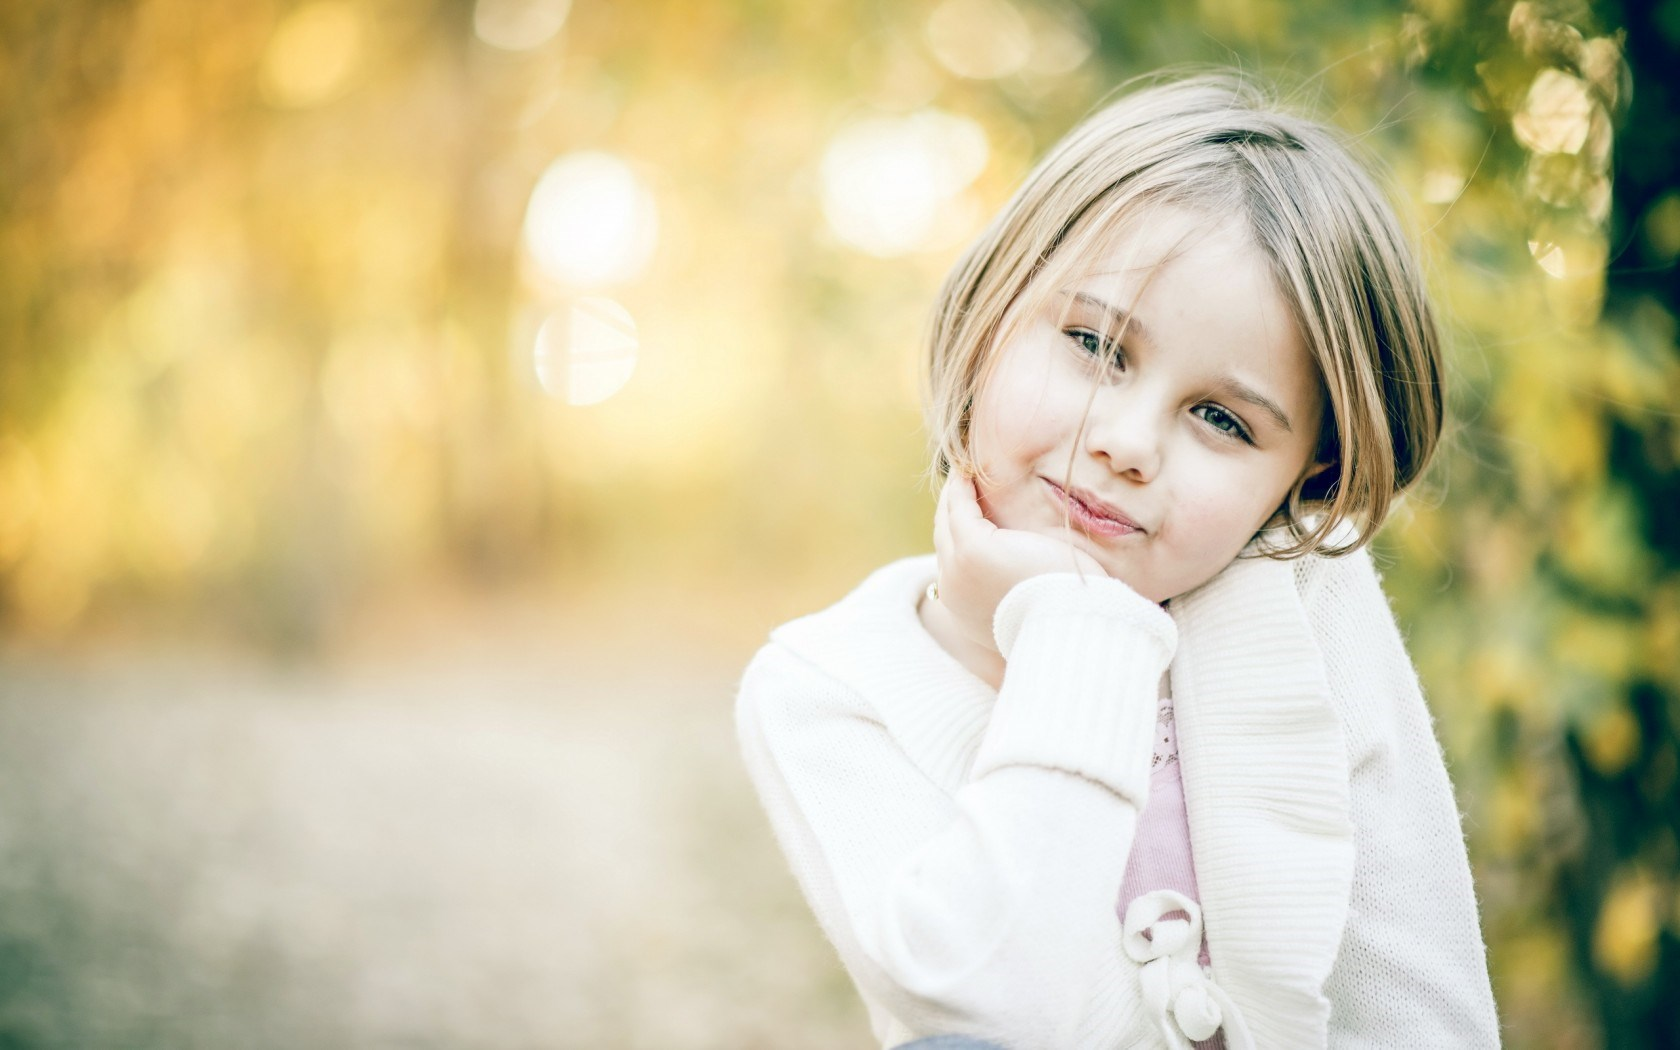 Beautiful Kid Girl HD Wallpaper   StylishHDWallpapers 1680x1050